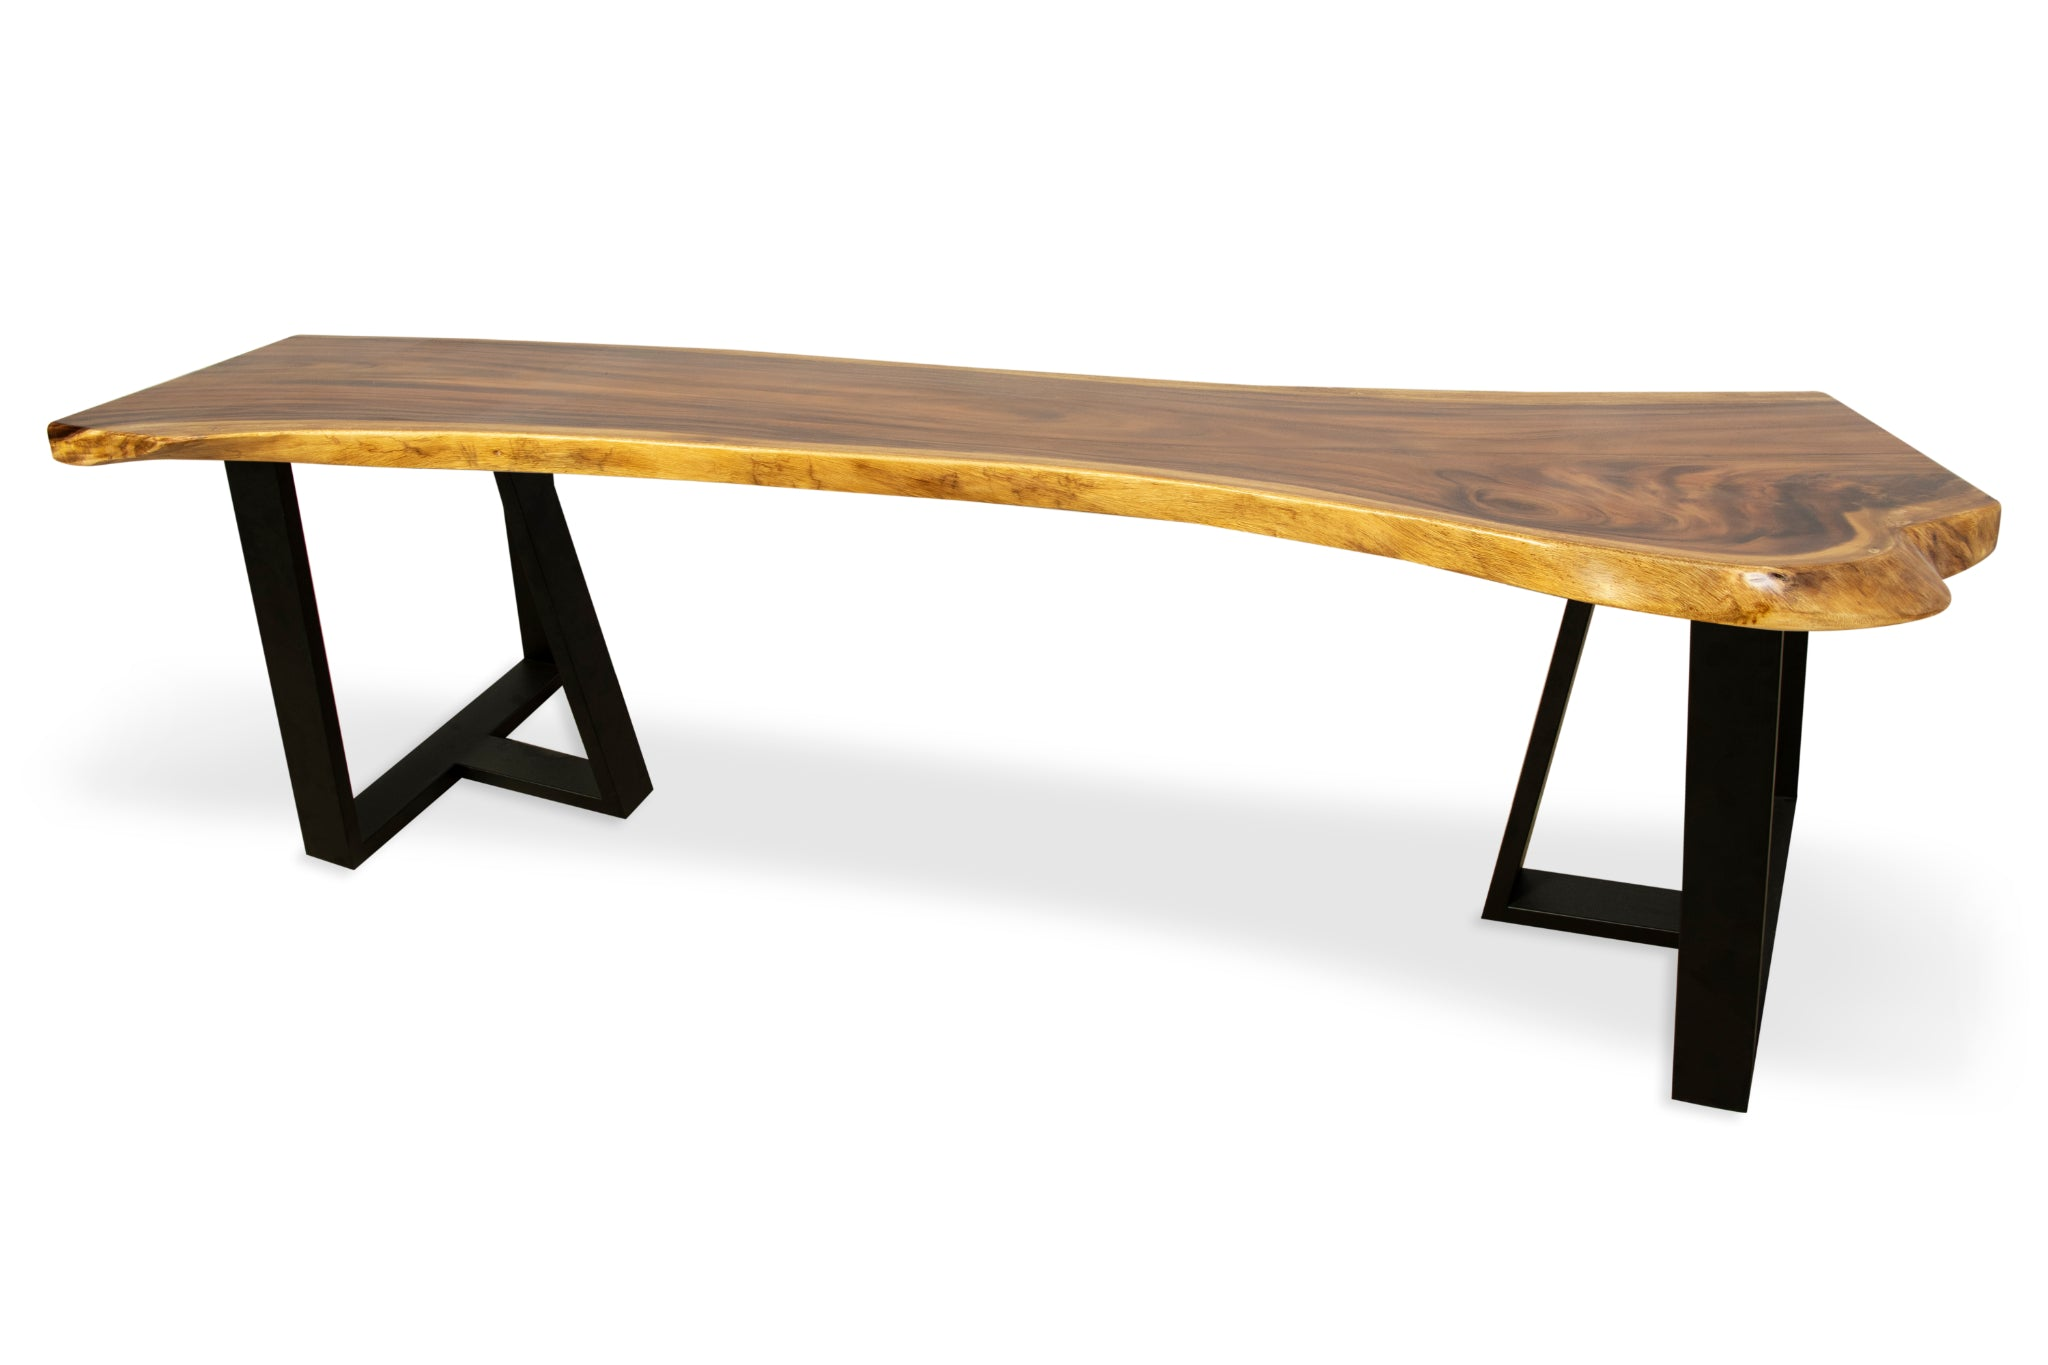 LAD025 - Exquisite Live-edge Table